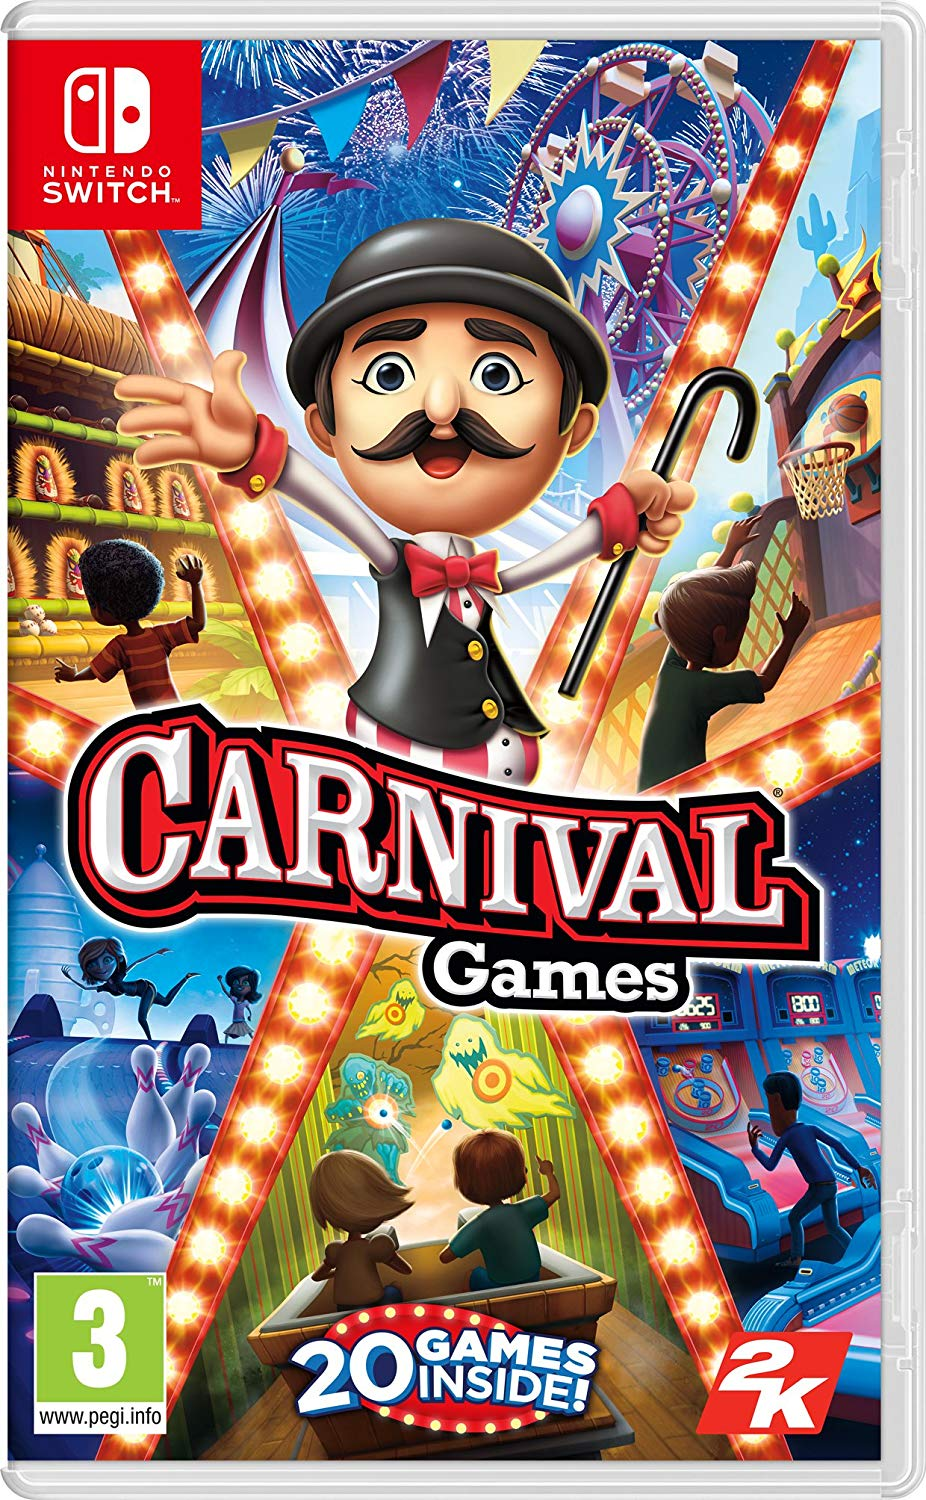 2K Games Carnival Games Nintendo Switch, Nintendo Switch, DVDMEGASTORE, DVDMEGASTORE